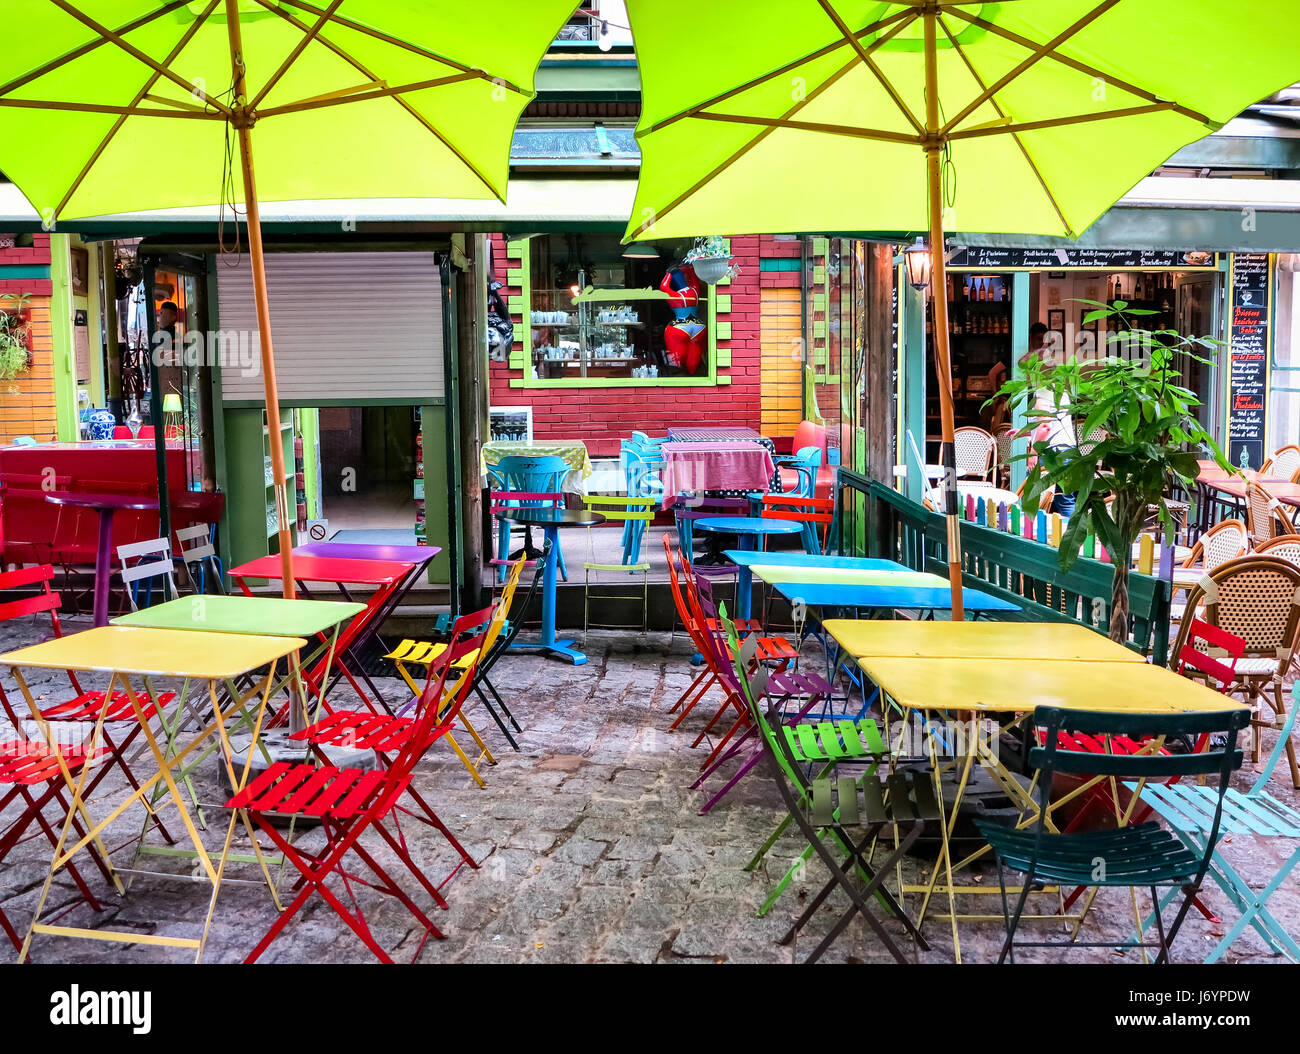 Picturesque colorful cafe terrace close to the Pantheon-Sorbonne University in Paris, France - Stock Image